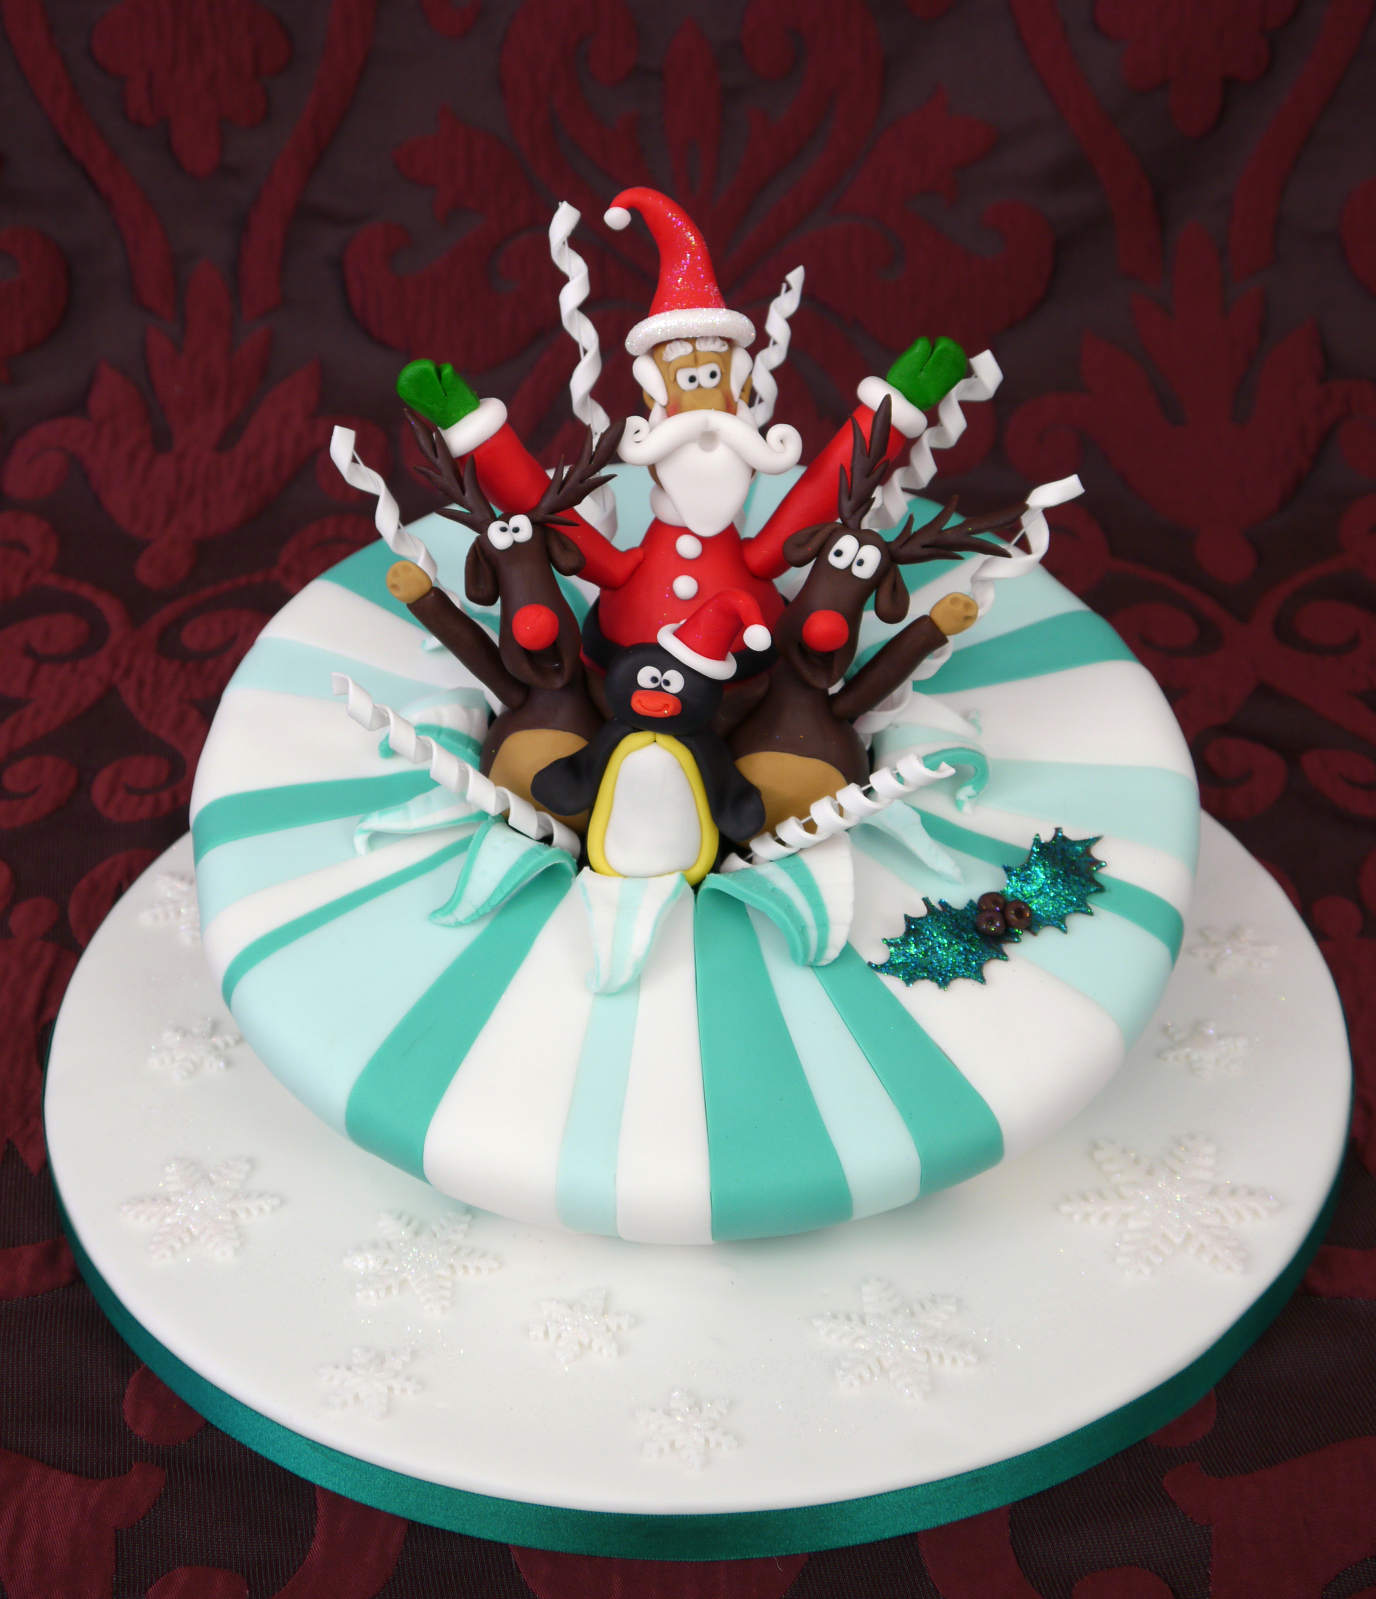 Christmas cakes decoration ideas little birthday cakes for Decoration ideas for christmas cake